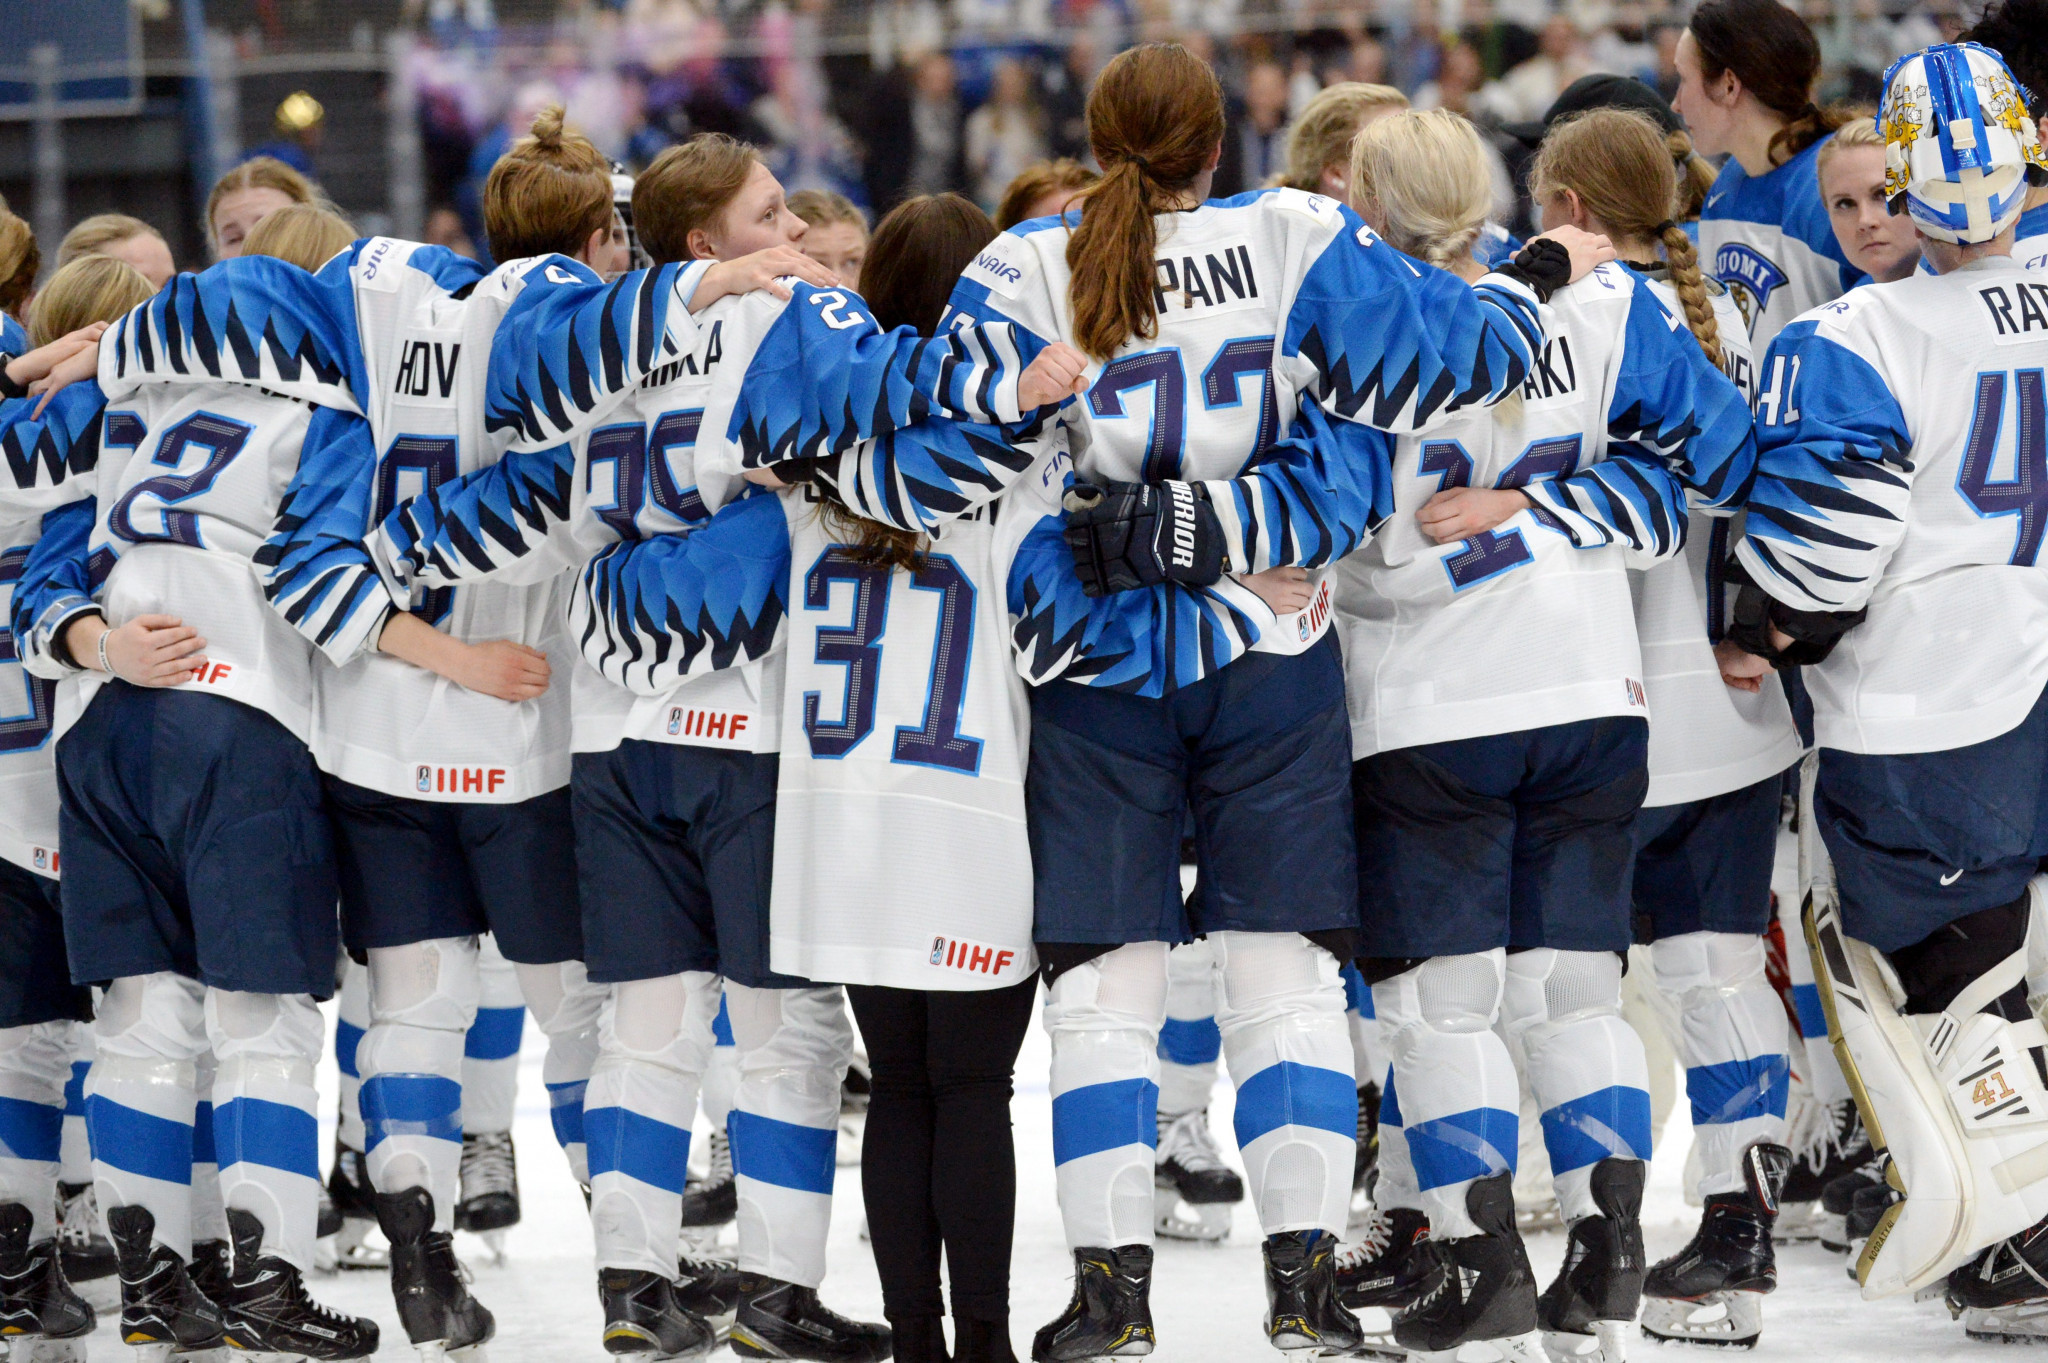 IIHF defend controversial decision to disallow Finland goal in Women's World Championship final against United States